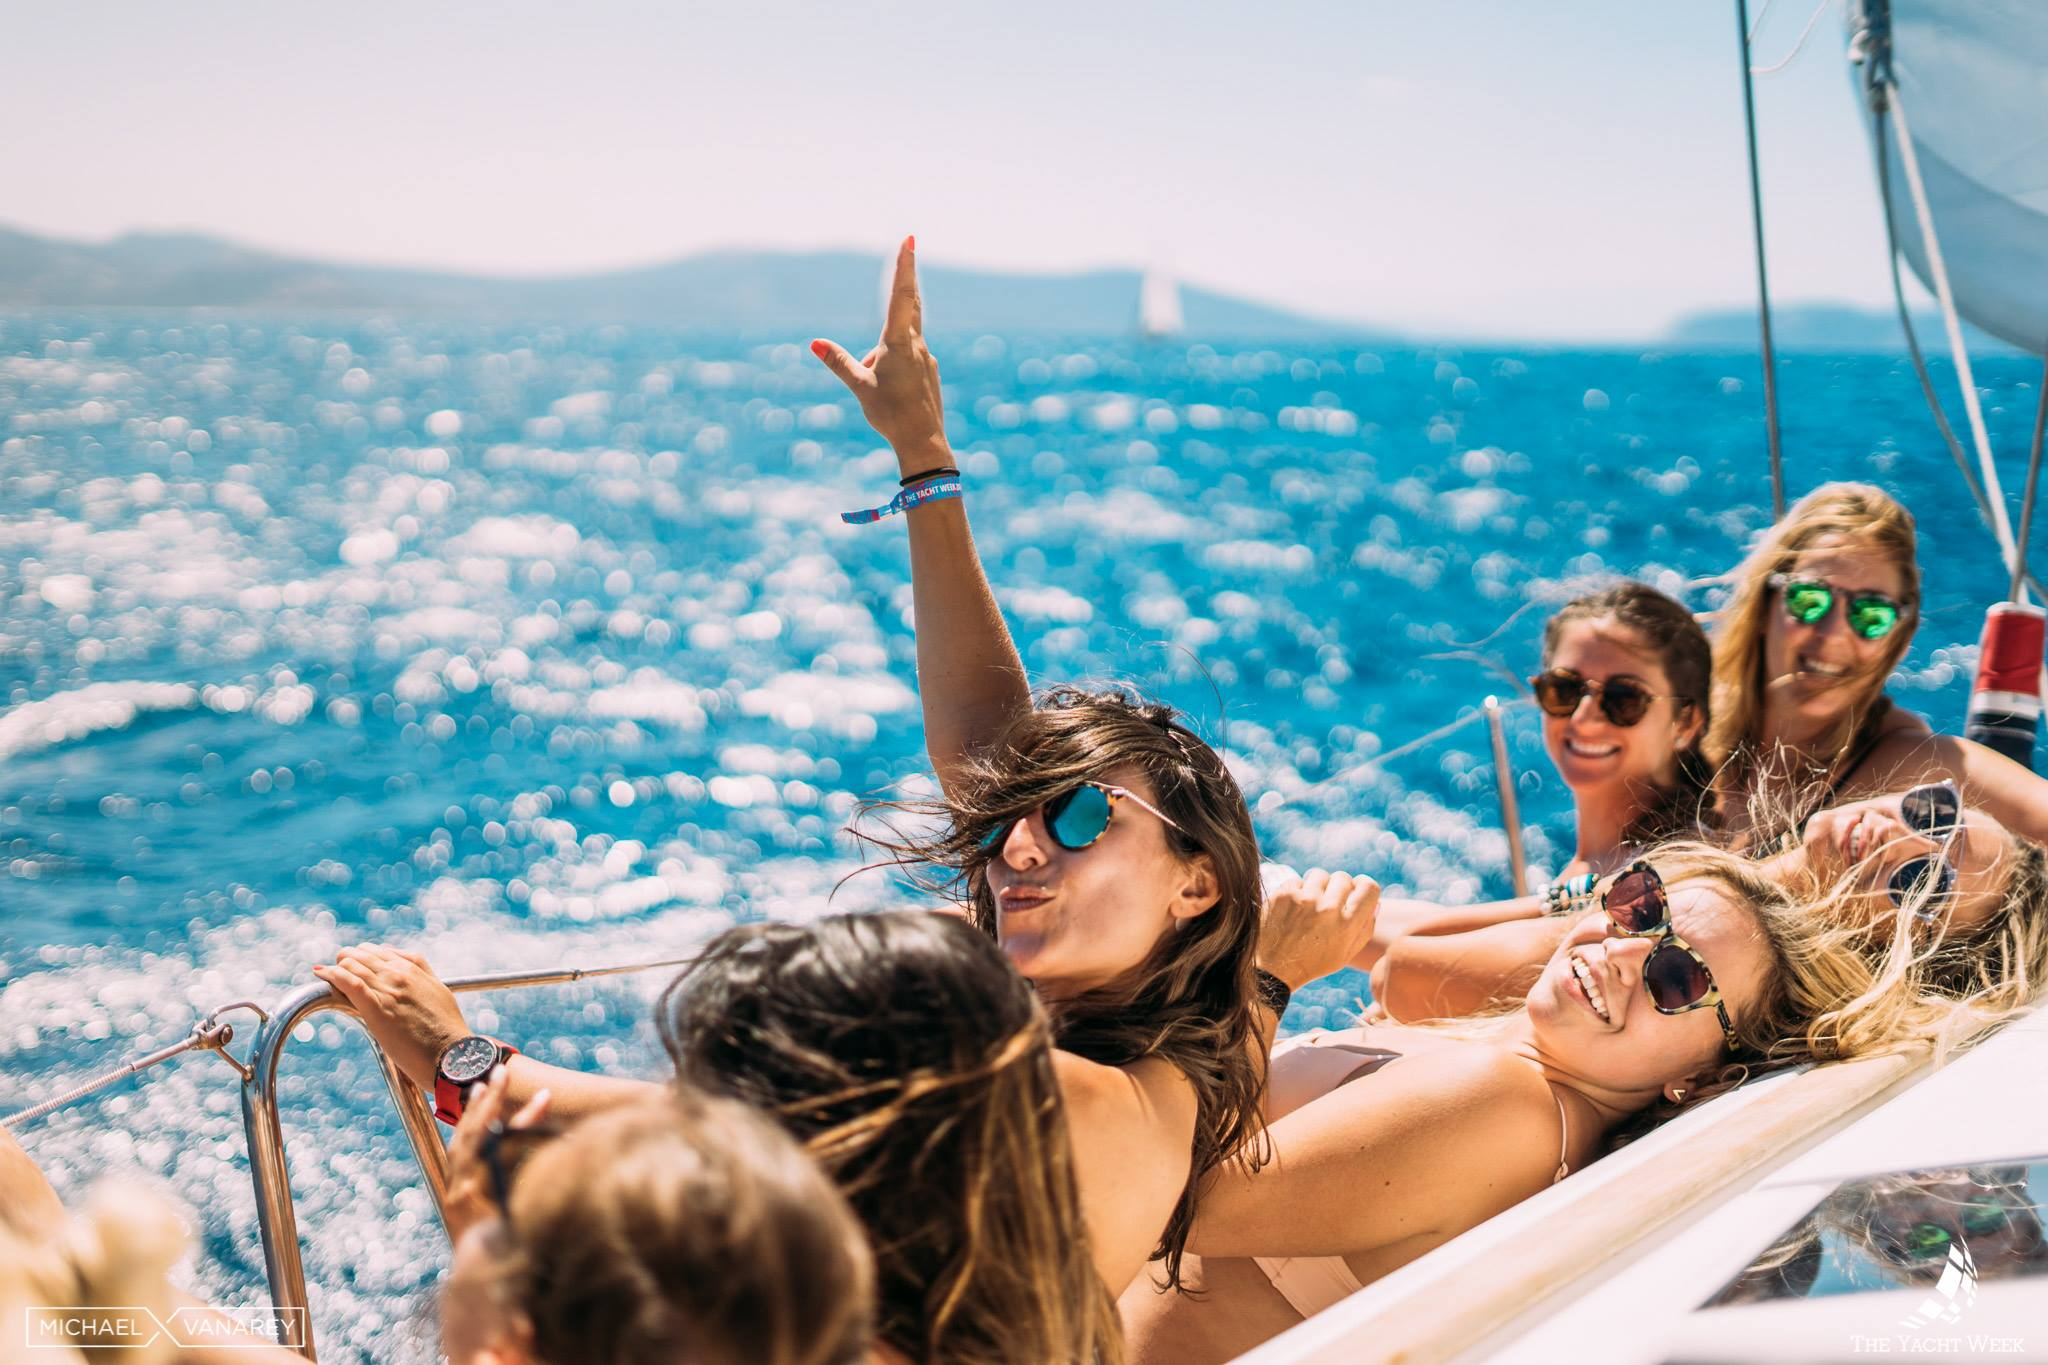 Video Release: Live The Yacht Week